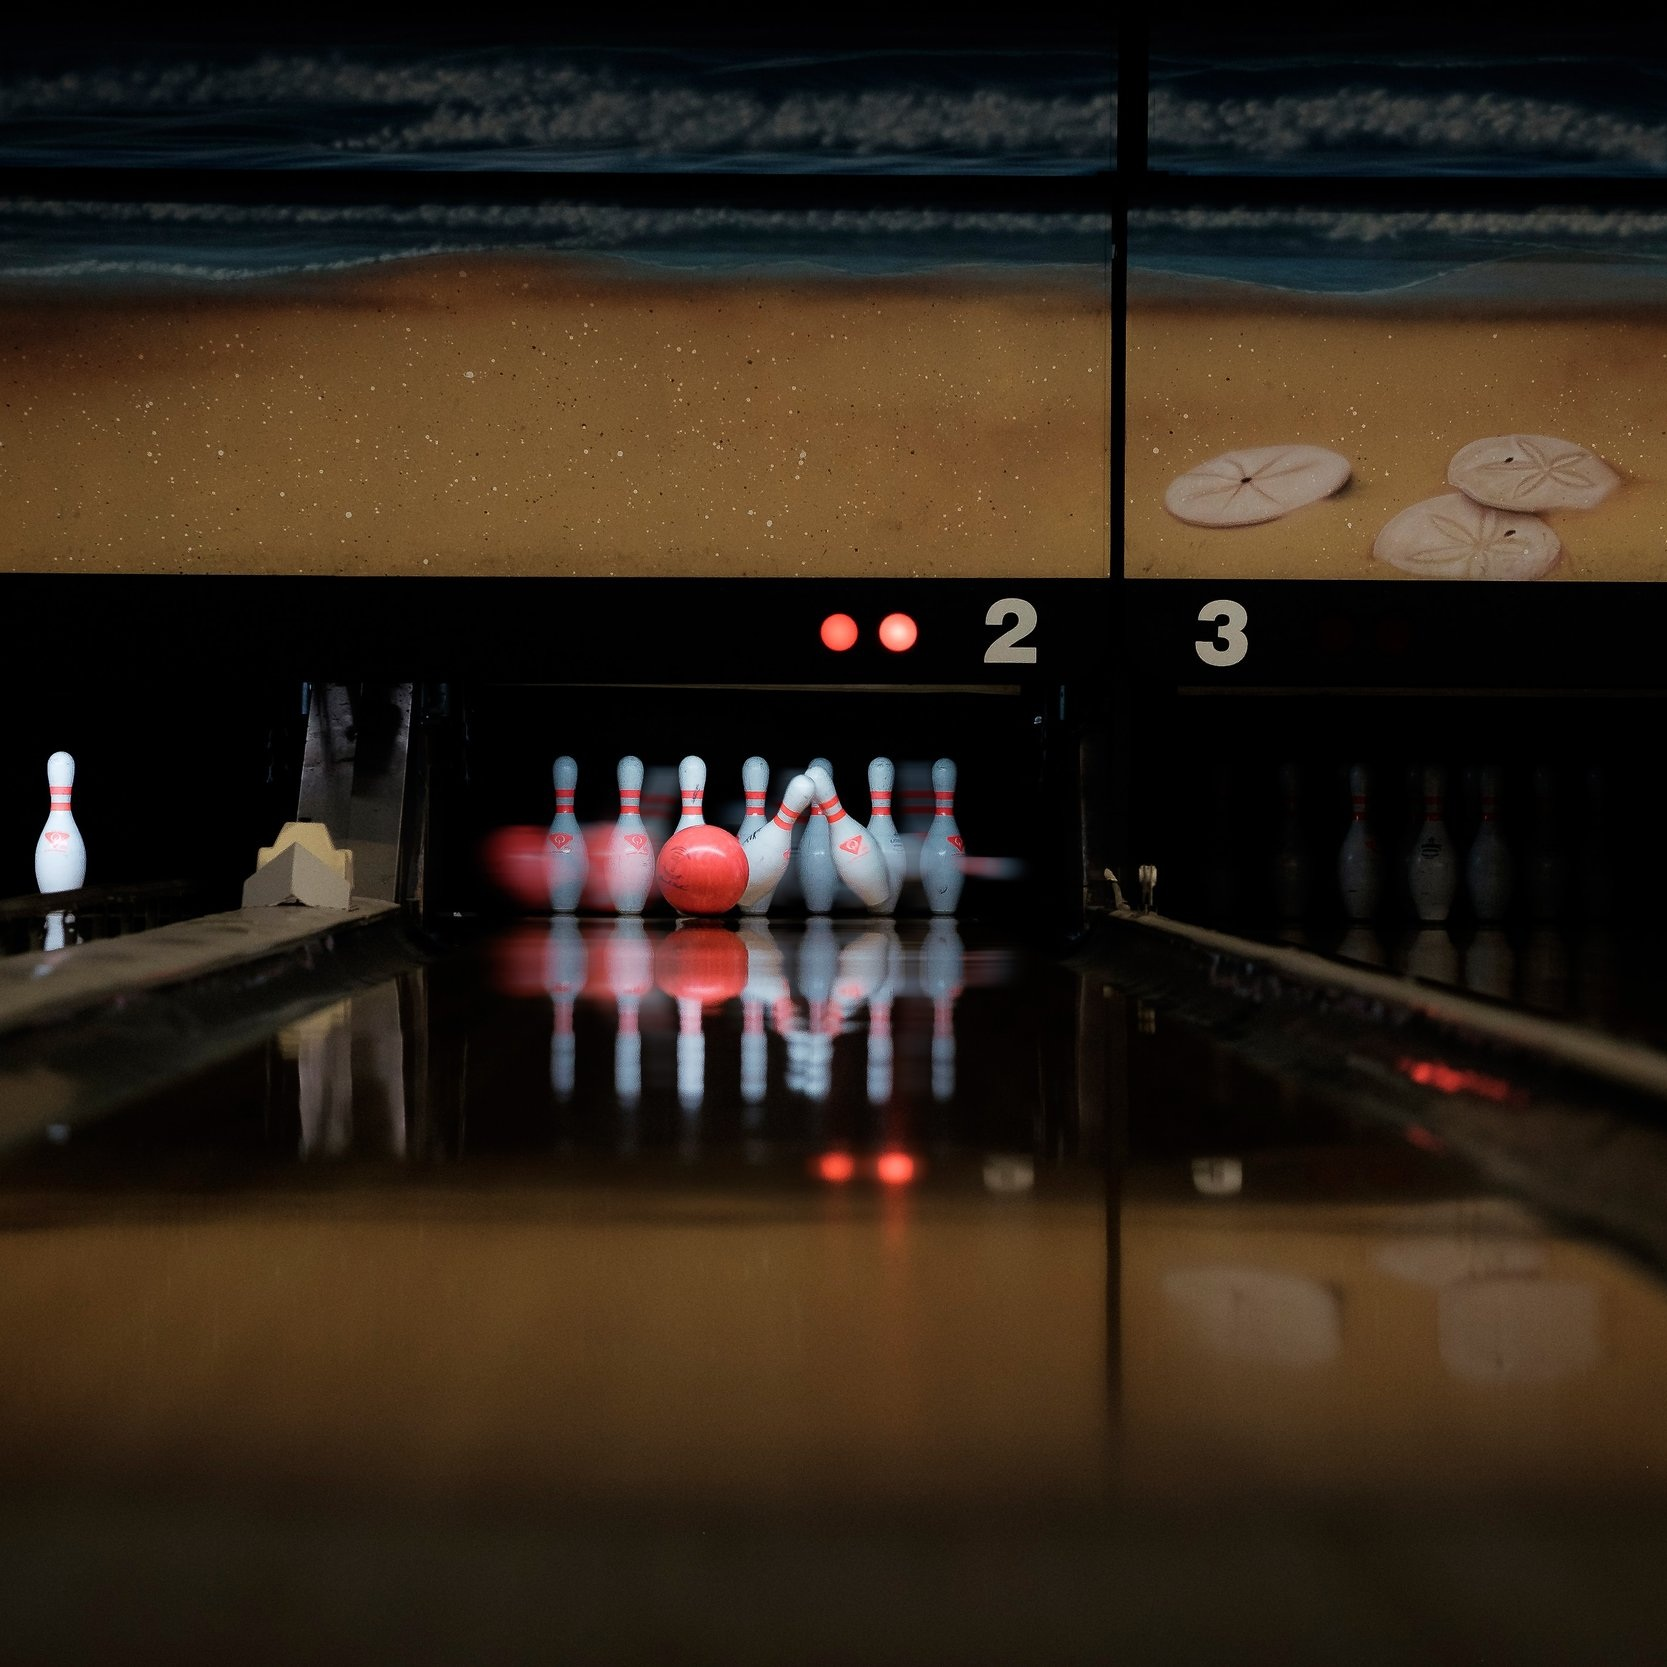 TENPIN BOWLING - Just a game to play with your friends on a weekend or in the holidays? Wrong.Tenpin bowling is a recognised sport with its own governing body and county and national teams.